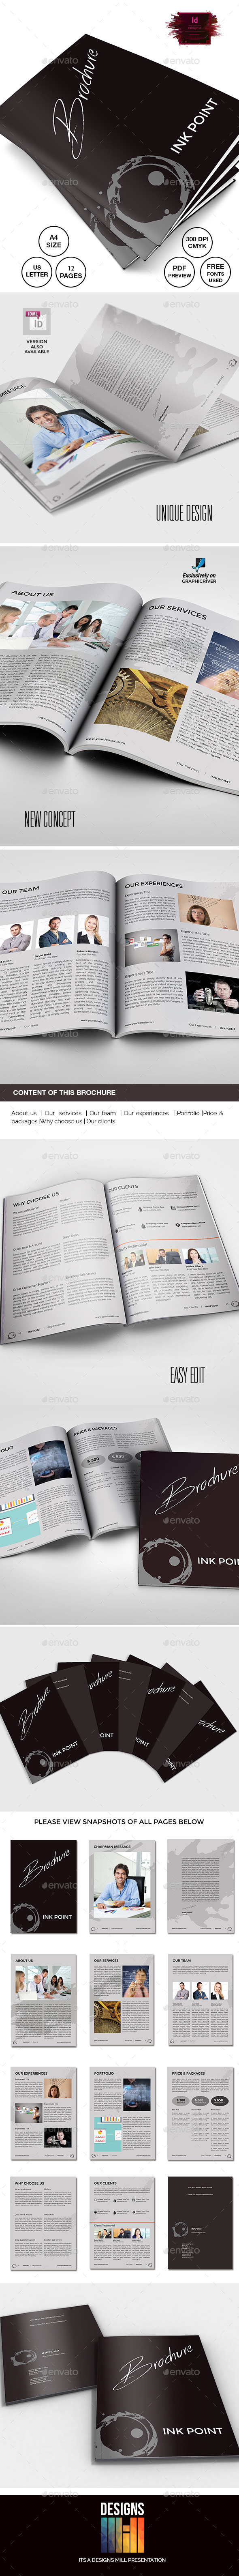 GraphicRiver InkPoint Brochure 9495998